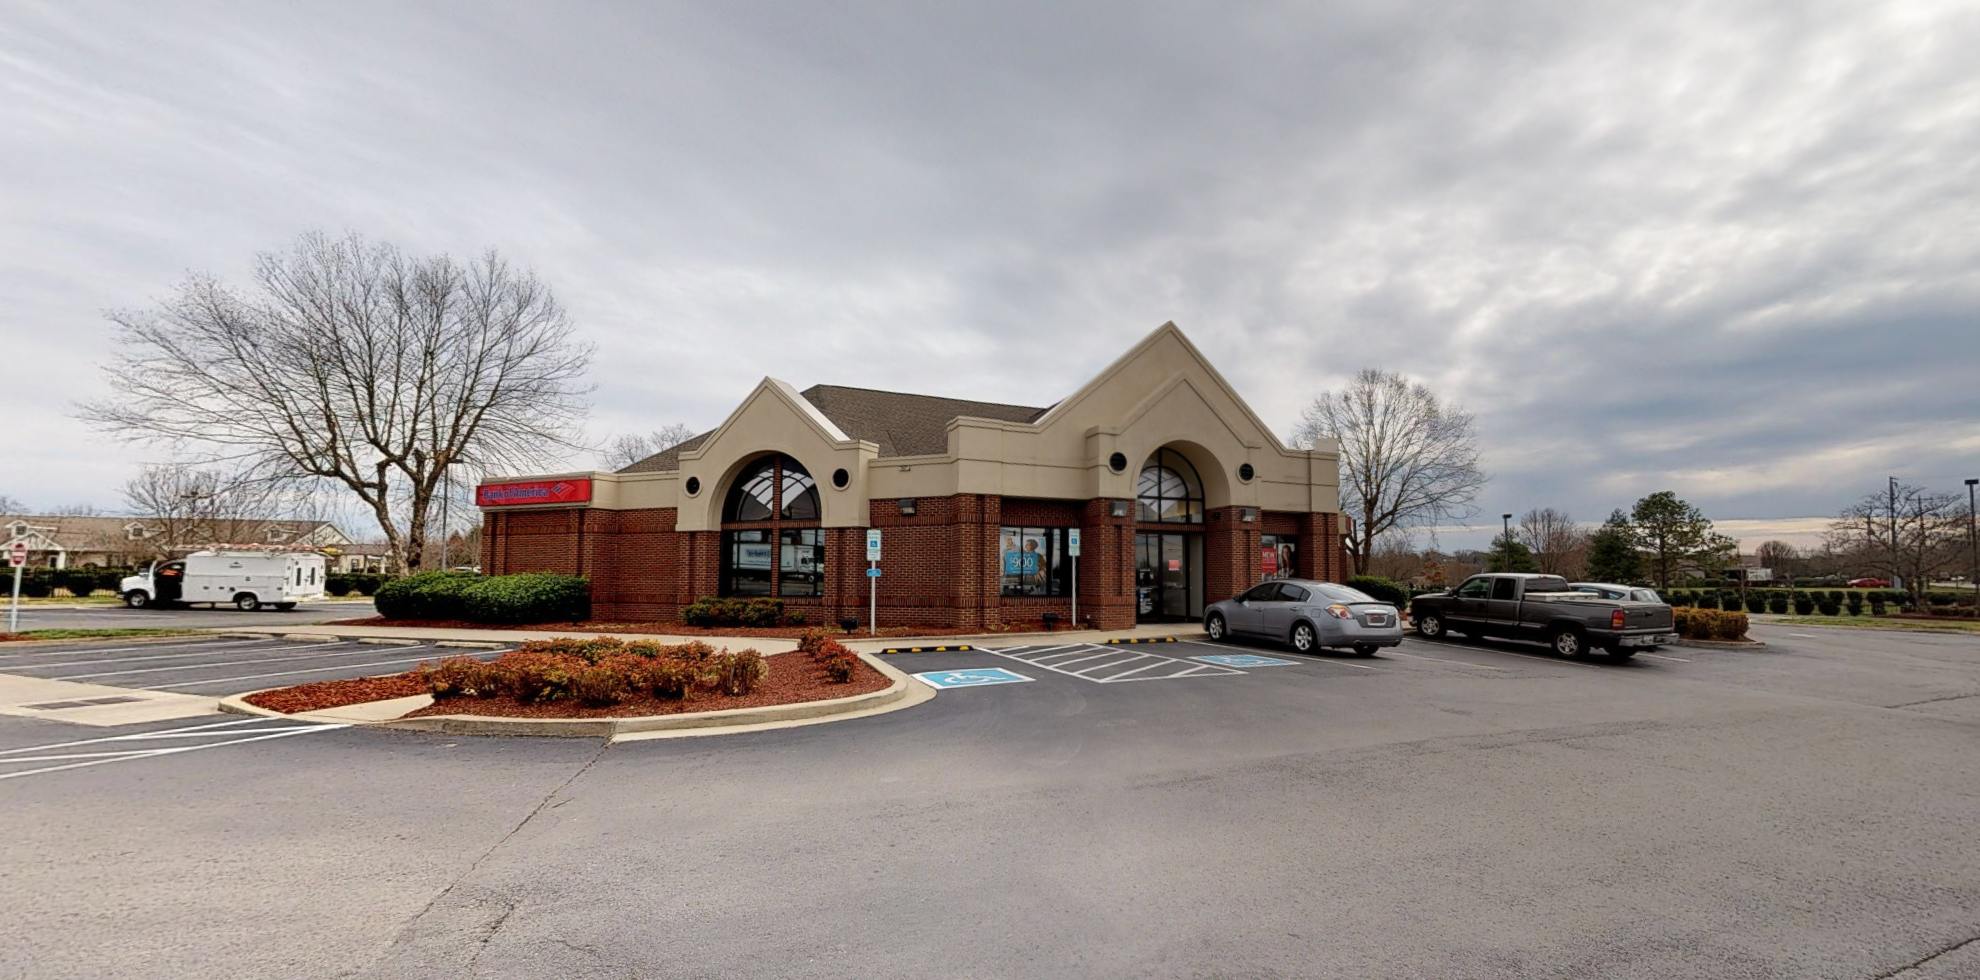 Bank of America financial center with drive-thru ATM | 345 E Main St, Hendersonville, TN 37075